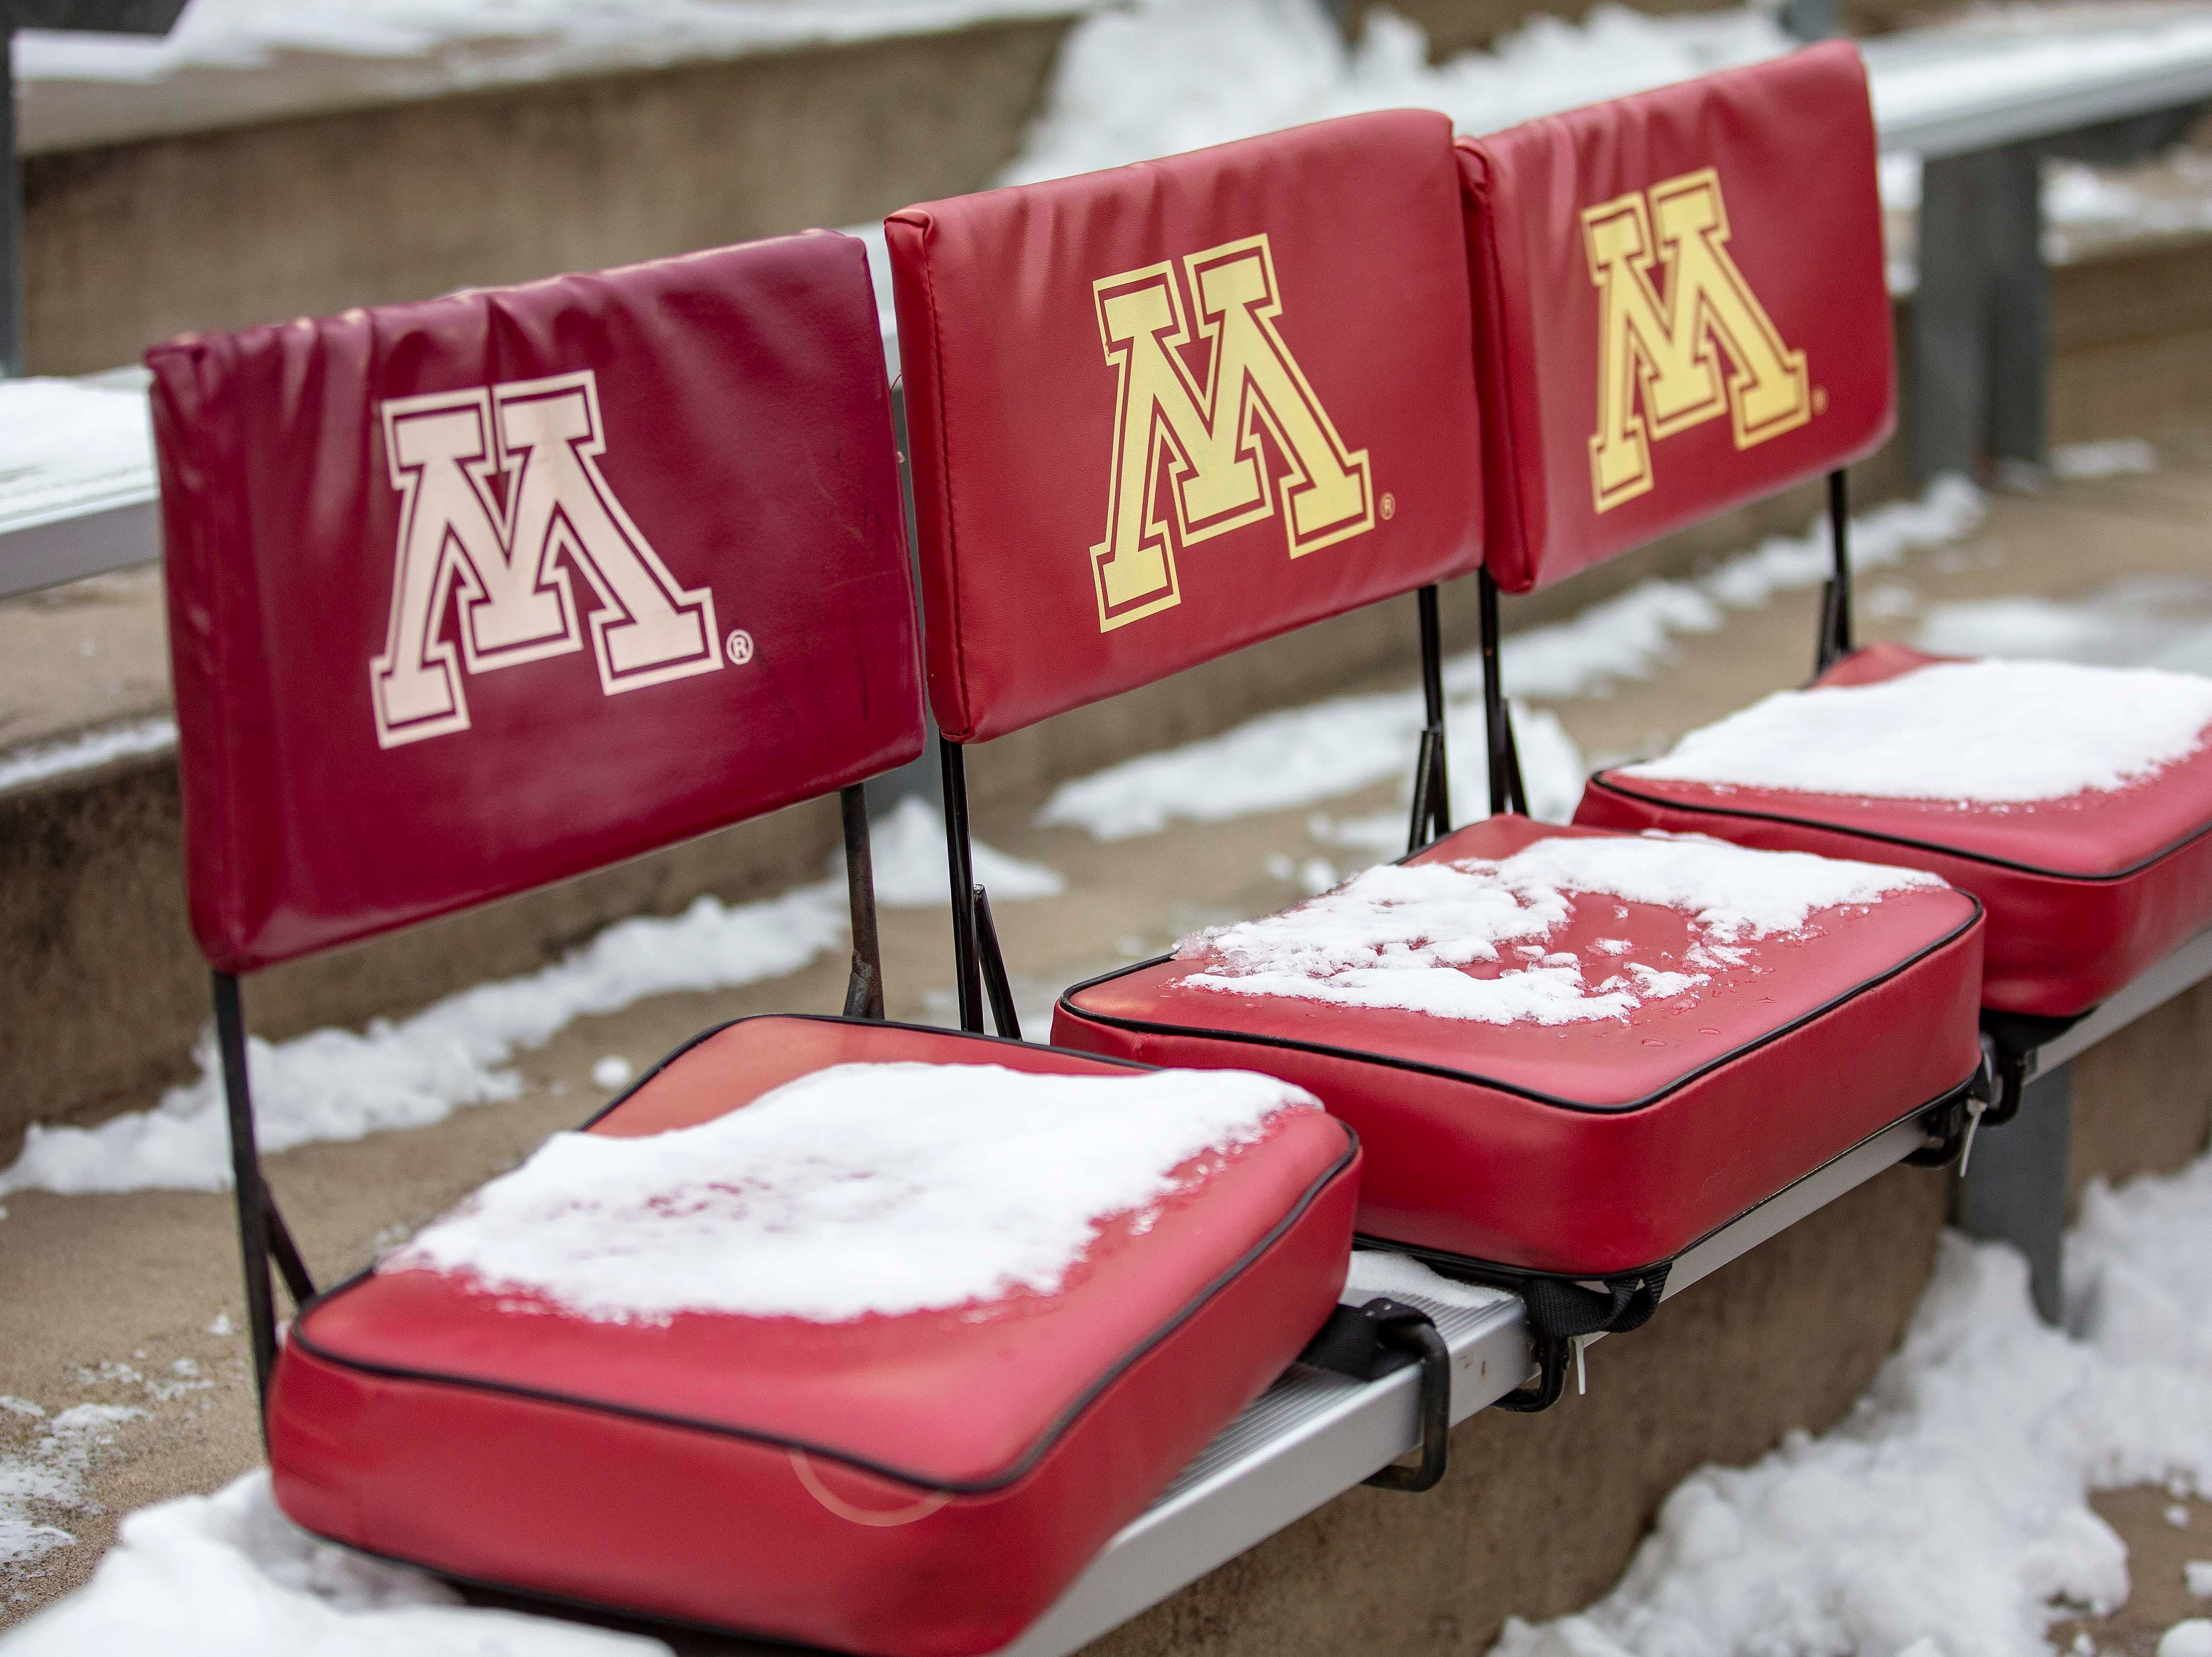 Nov 10, 2018; Minneapolis, MN, USA; Snow covers seats at TCF Bank Stadium before a game between the Purdue Boilermakers and the Minnesota Golden Gophers at TCF Bank Stadium. Mandatory Credit: Jesse Johnson-USA TODAY Sports